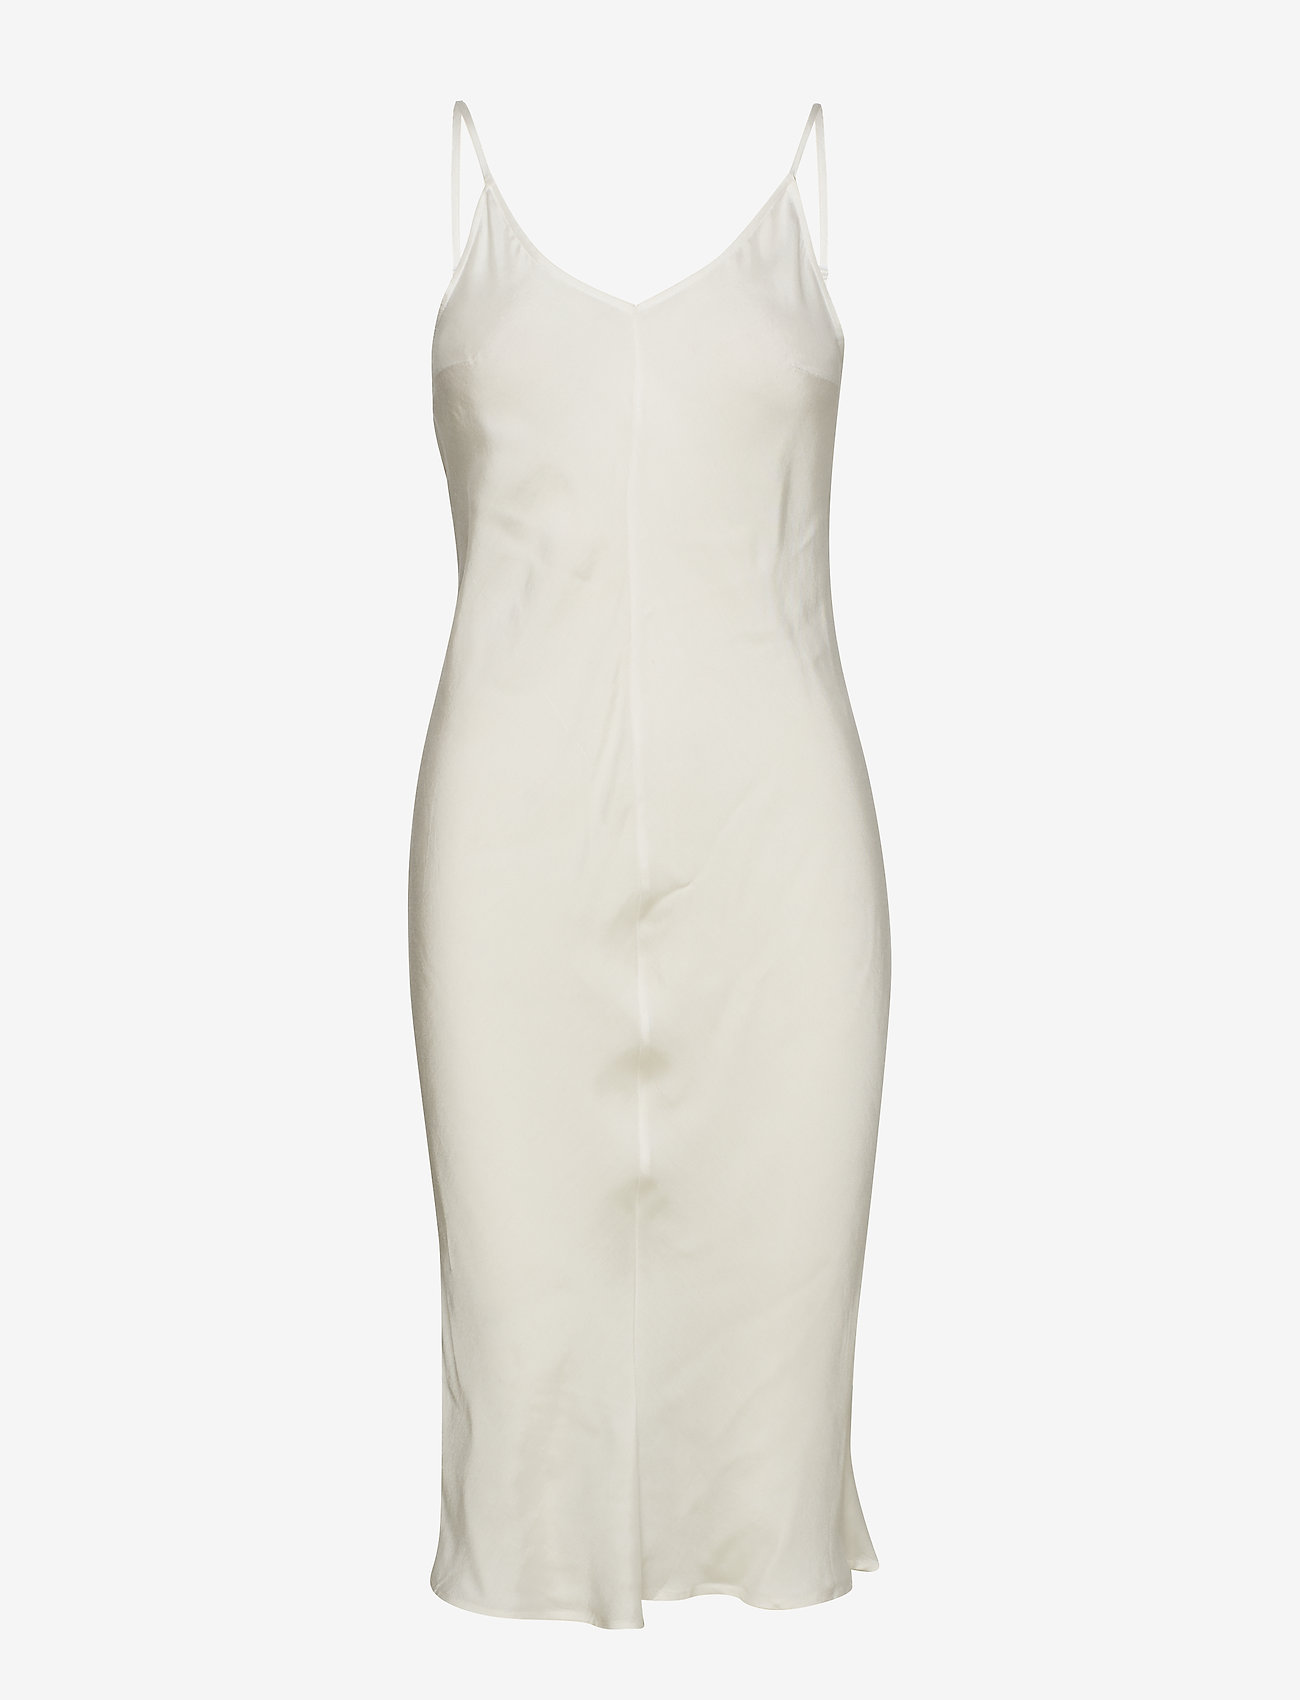 Dre1028s91 (Soft White) (1439.60 kr) - By Malene Birger